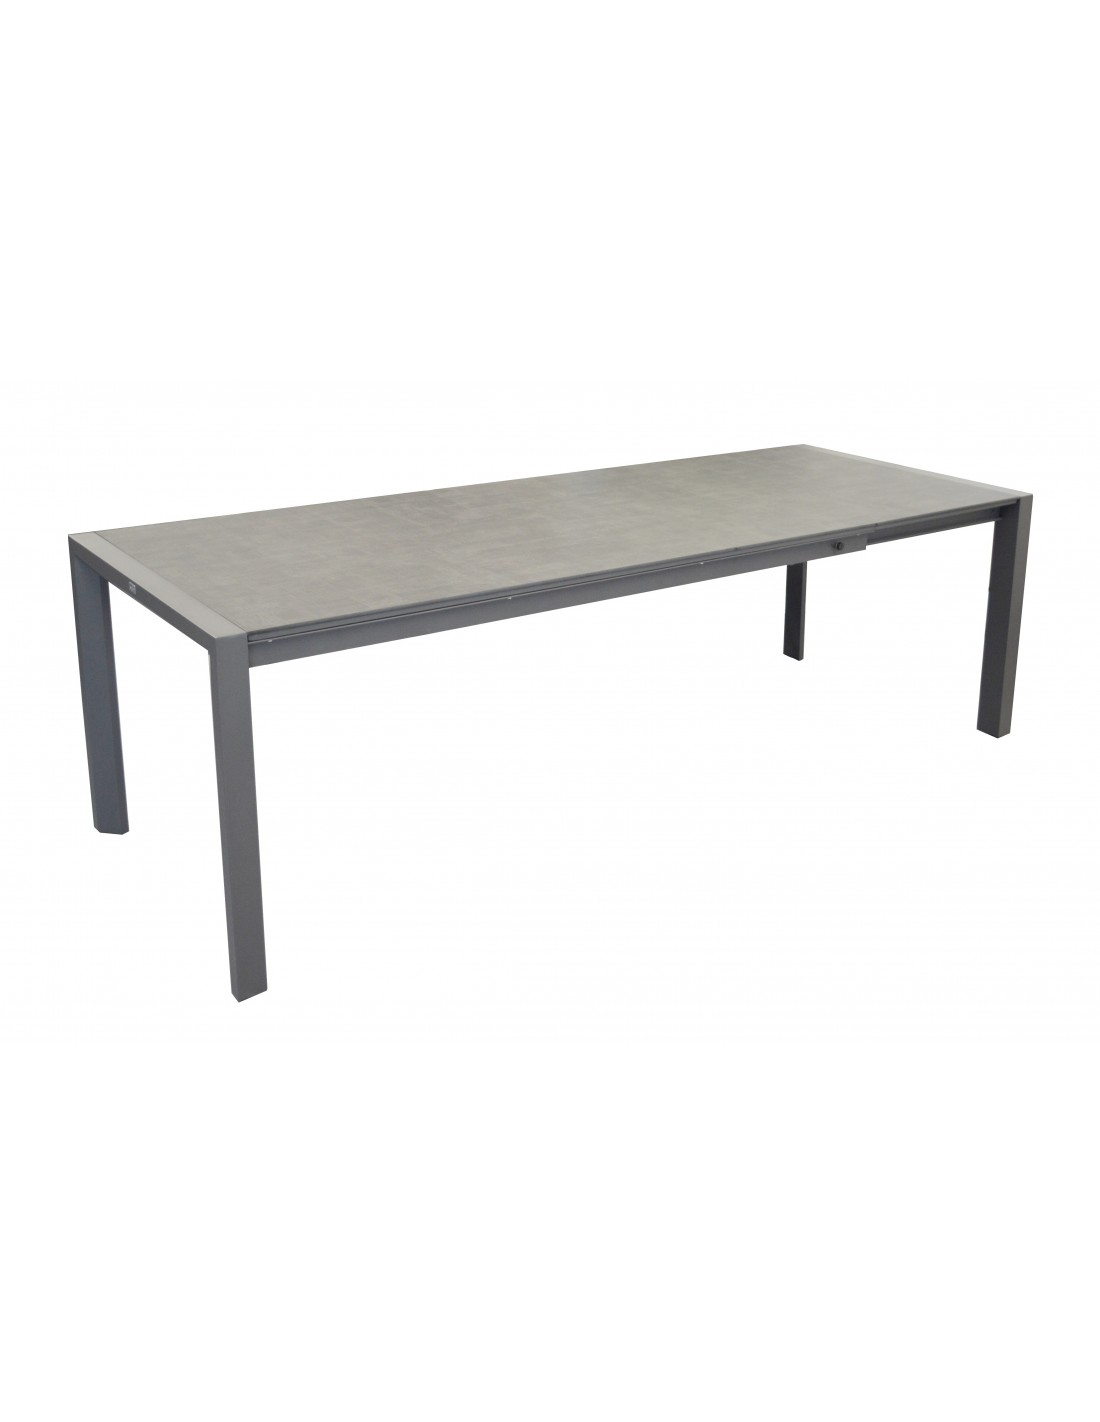 Table milo extensible 140 190 cm plateau trespa grey ou for Table 140 cm extensible